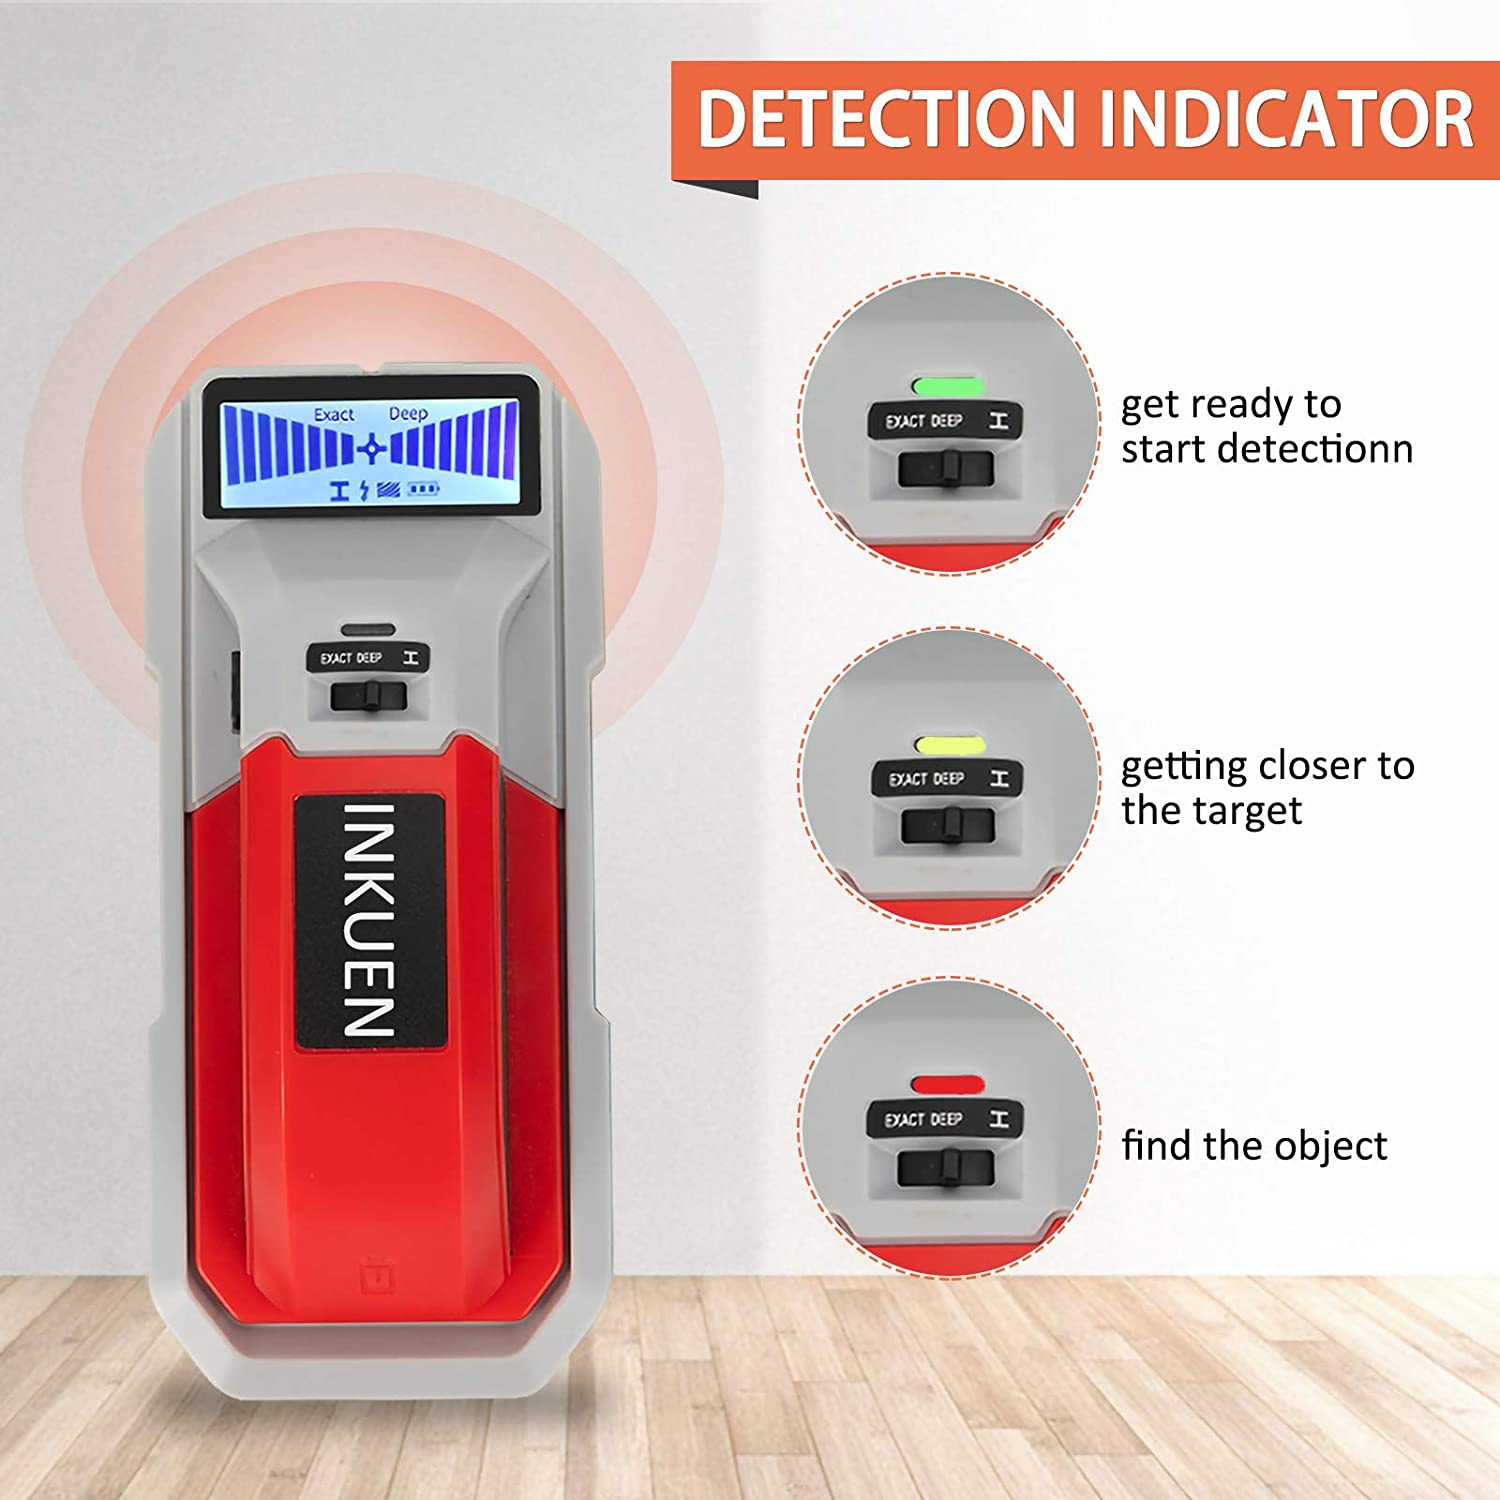 INKUEN Stud Finder Wall Scanner Electronic Stud Sensor Wall Detector Center Finding with LCD Display for Wood AC Wire Metal Studs Joist Detection Matte Red Audio Alarm /& Indicator Light